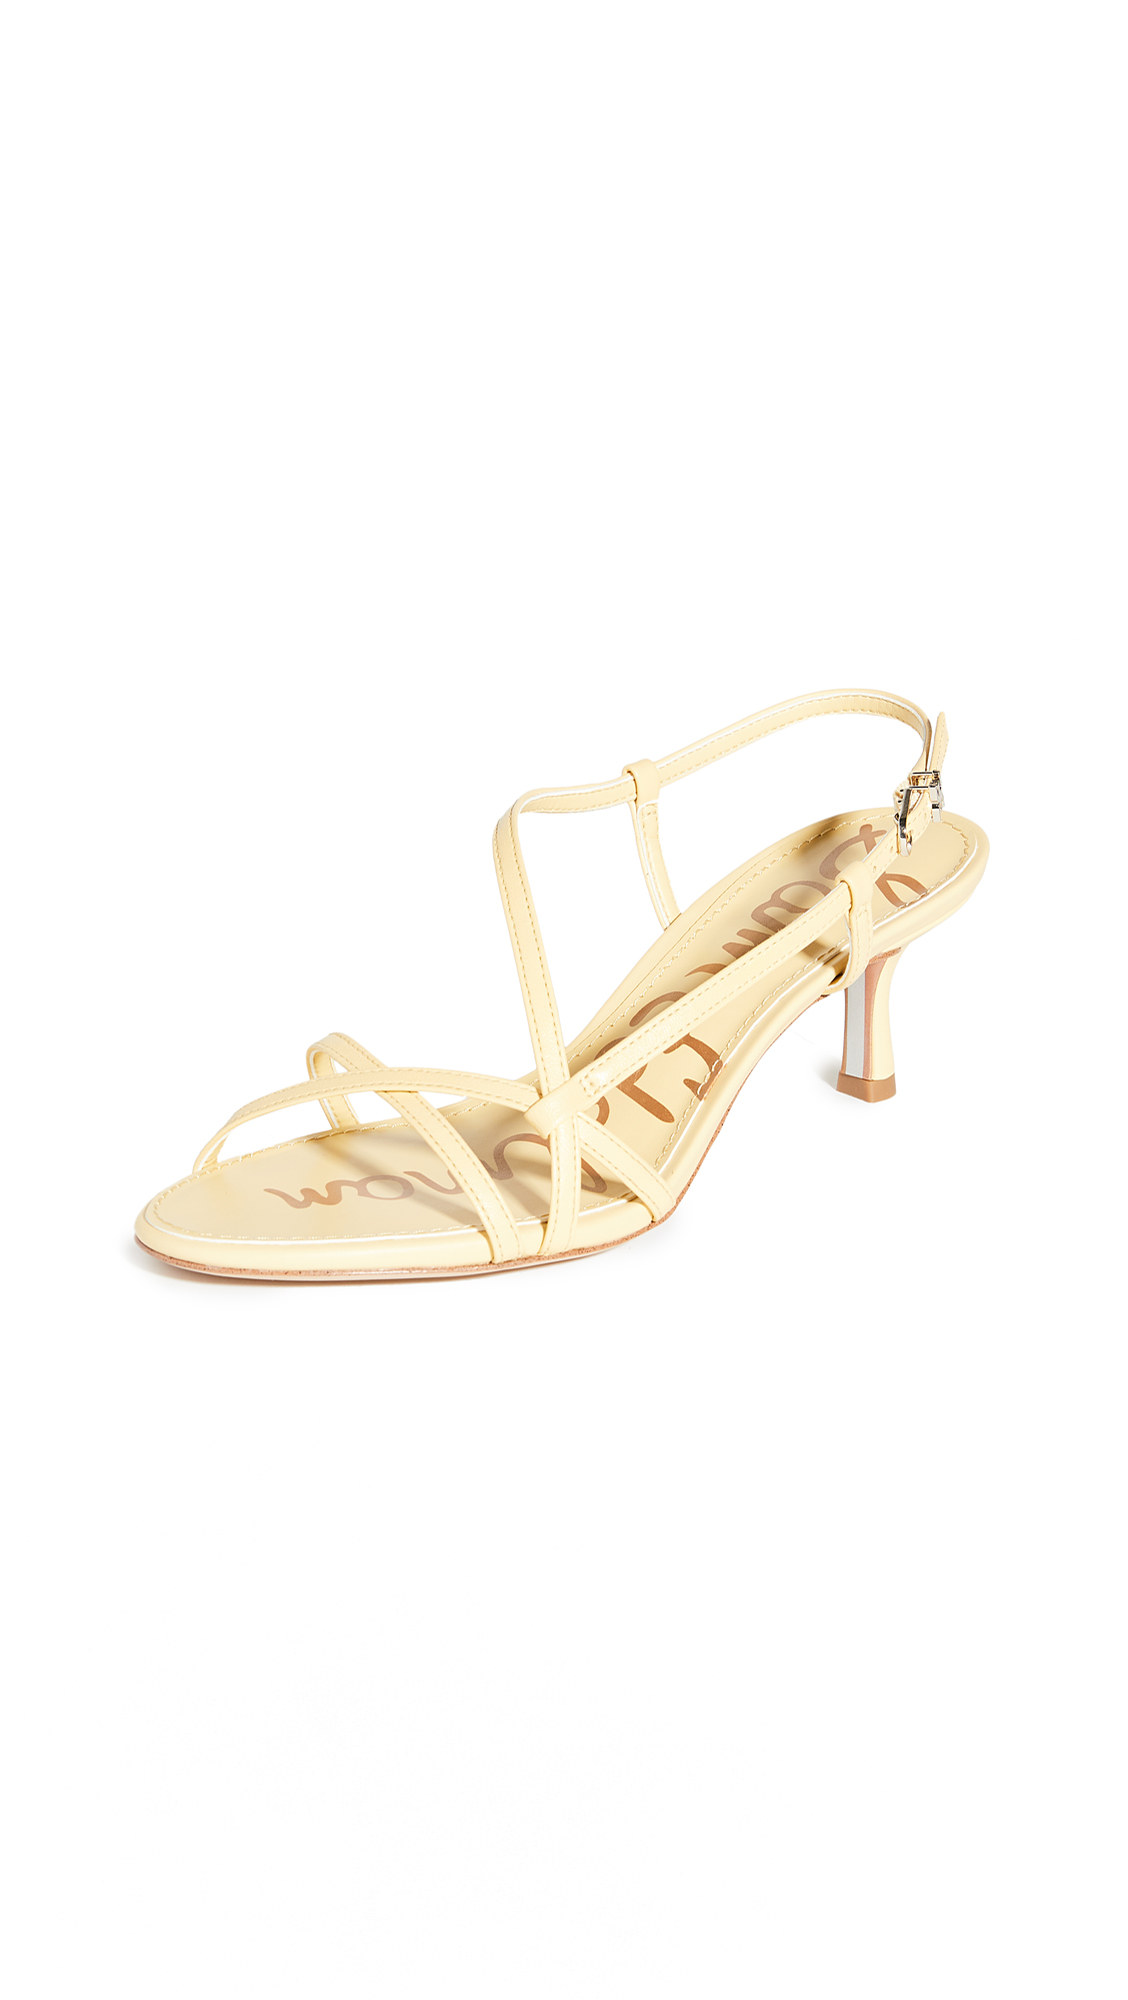 Sam Edelman Judy Sandals – 30% Off Sale